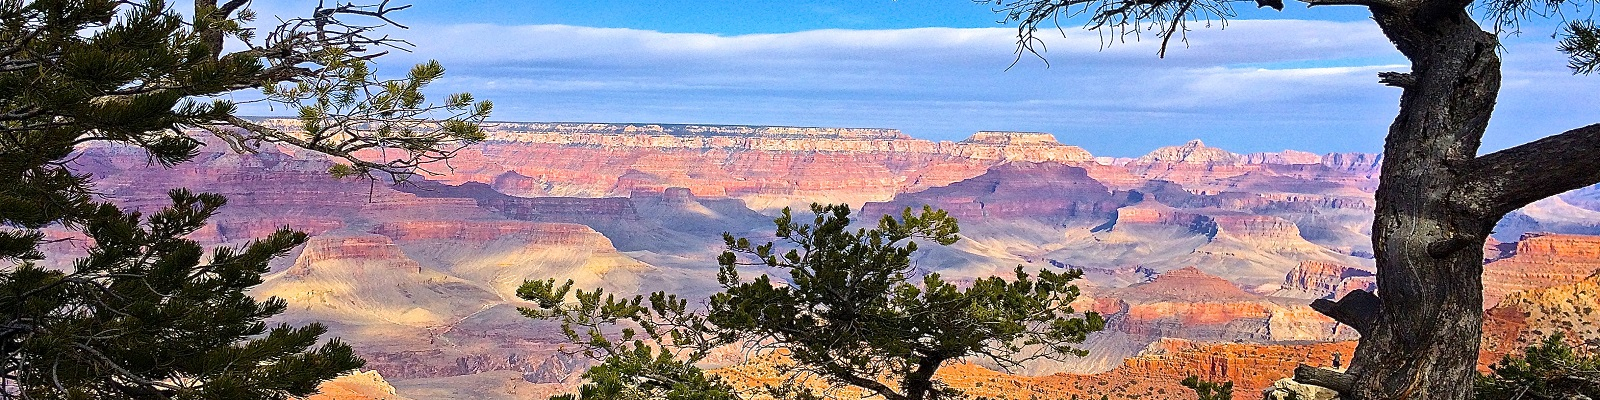 grand canyon christian singles Experience the grand canyon with the #1 rated christian tour company in the southwest see the grand canyon from a biblical creation perspective join from flagstaff, williams, tusayan, or.